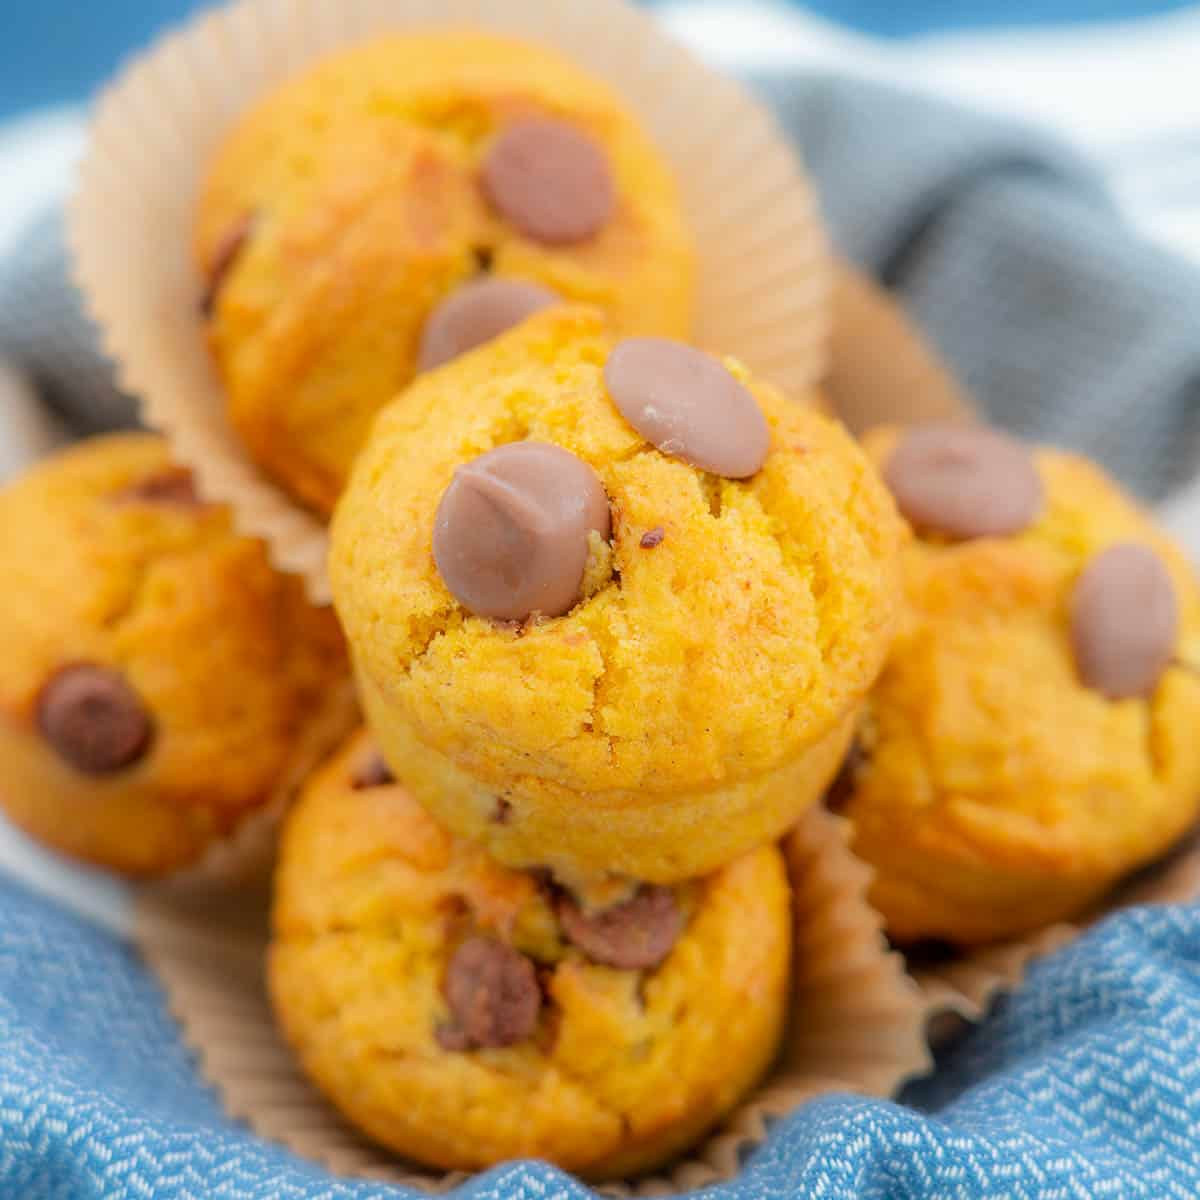 Pumpkin chocolate chip muffins in a bowl lined with blue cloth.